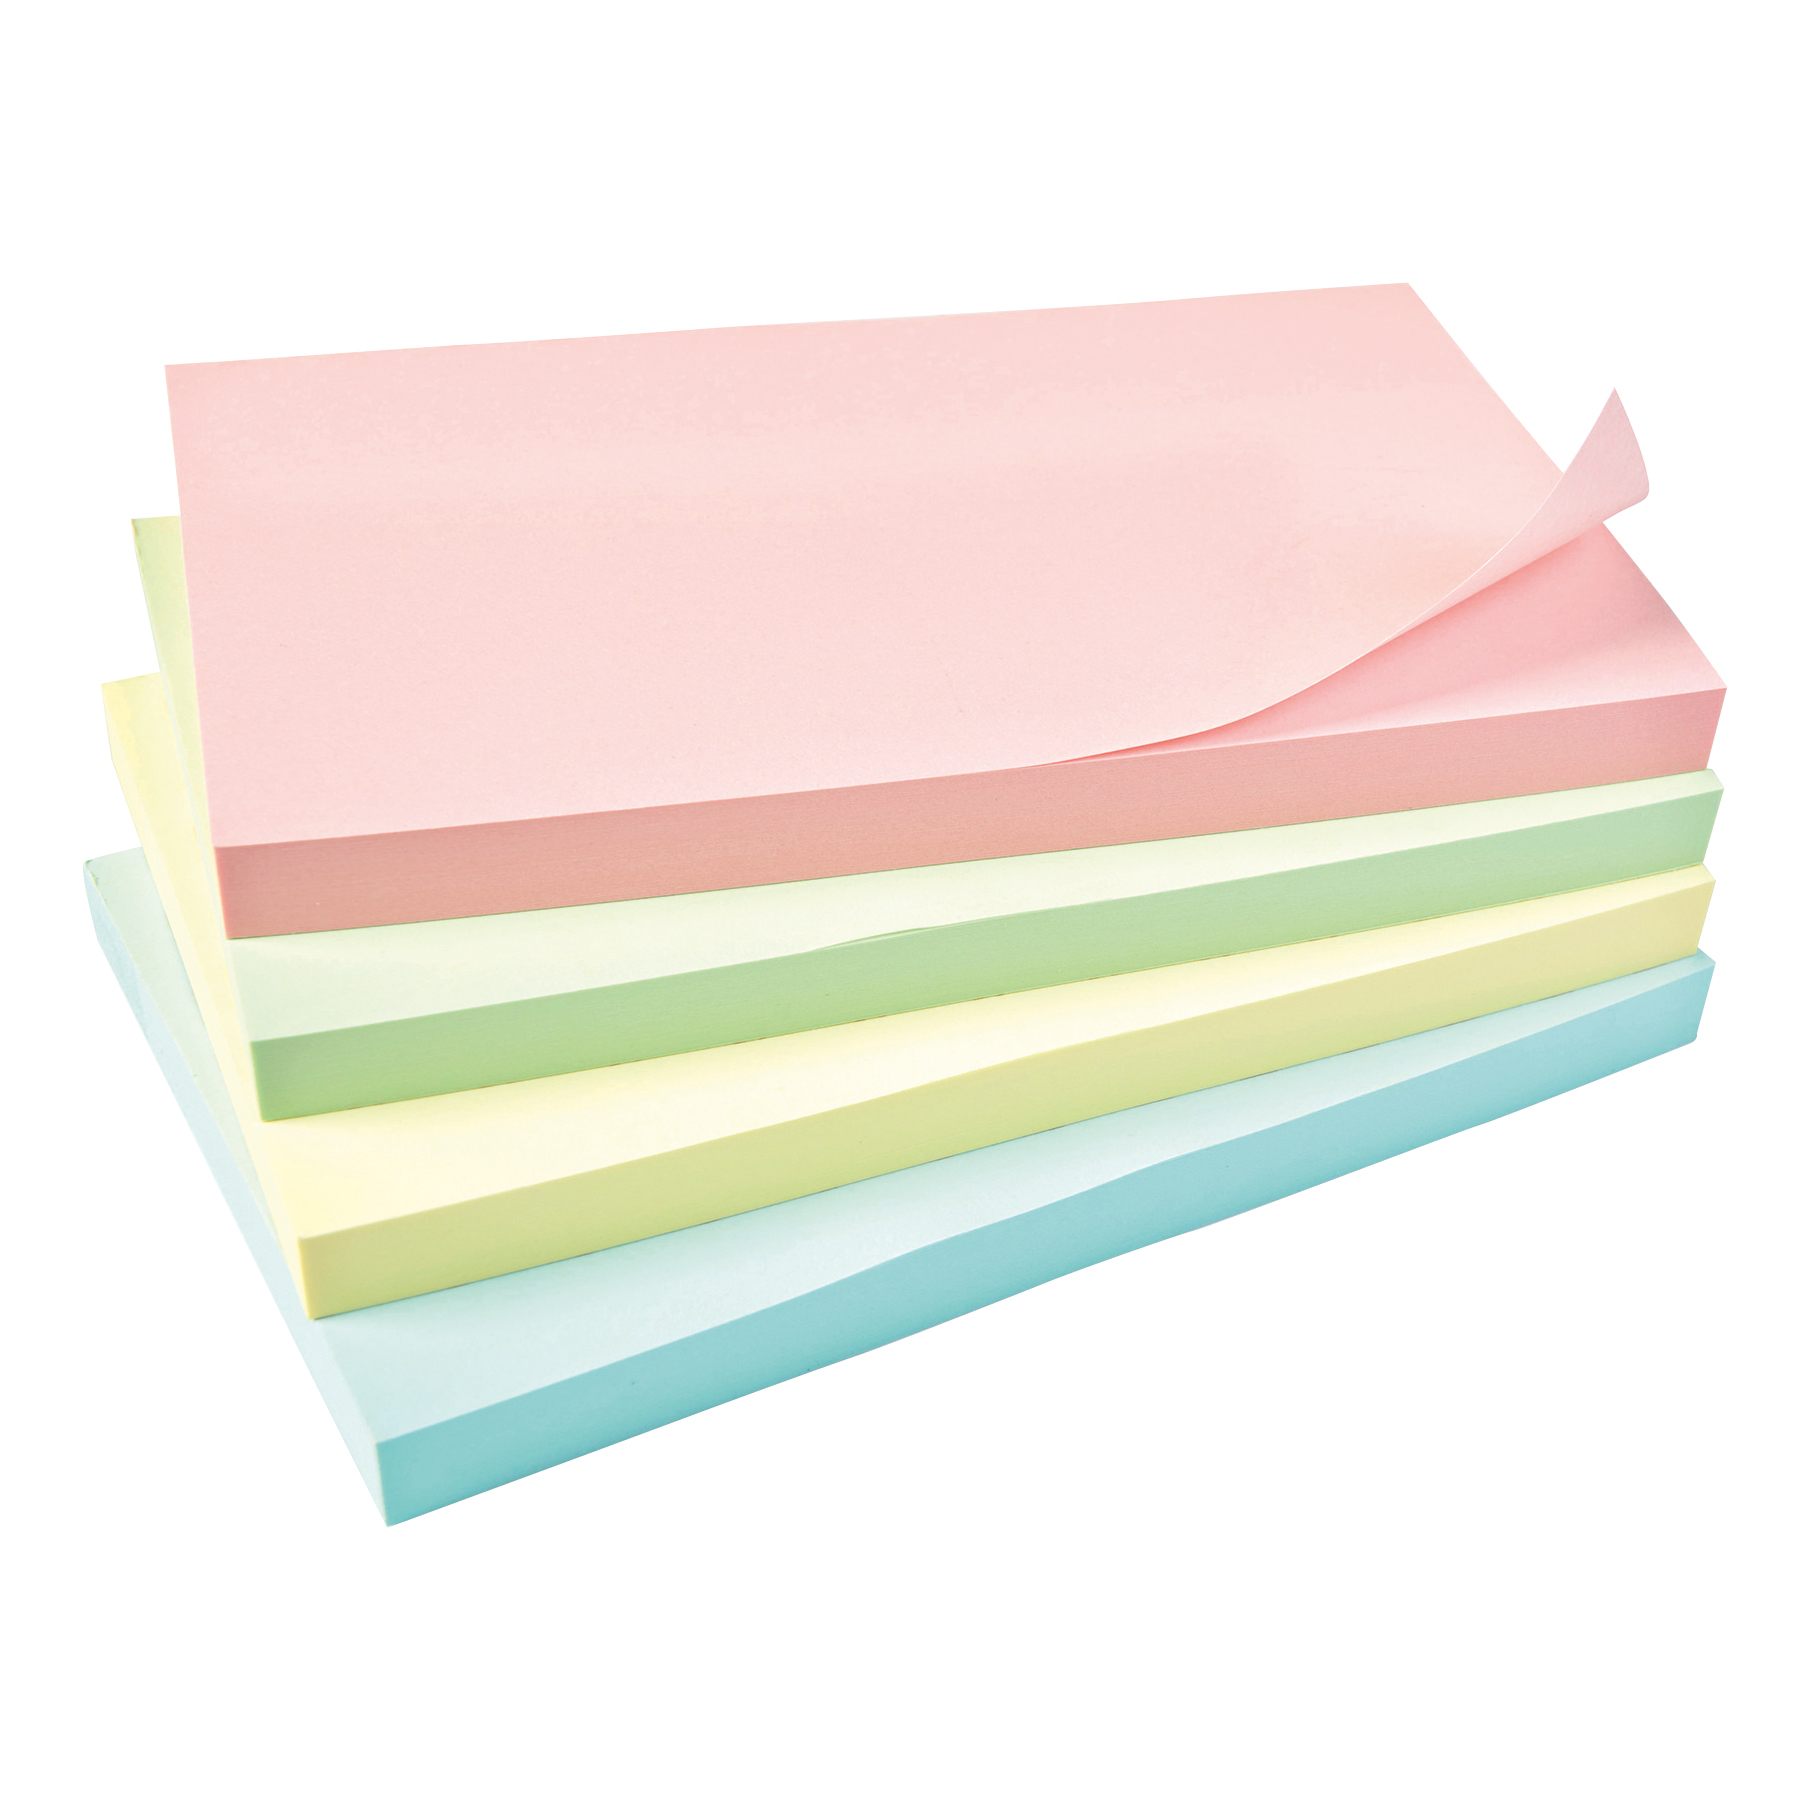 Coloured 5 Star Office Re-Move Notes Repositionable Pastel Pad of 100 Sheets 76x127mm Assorted [Pack 12]